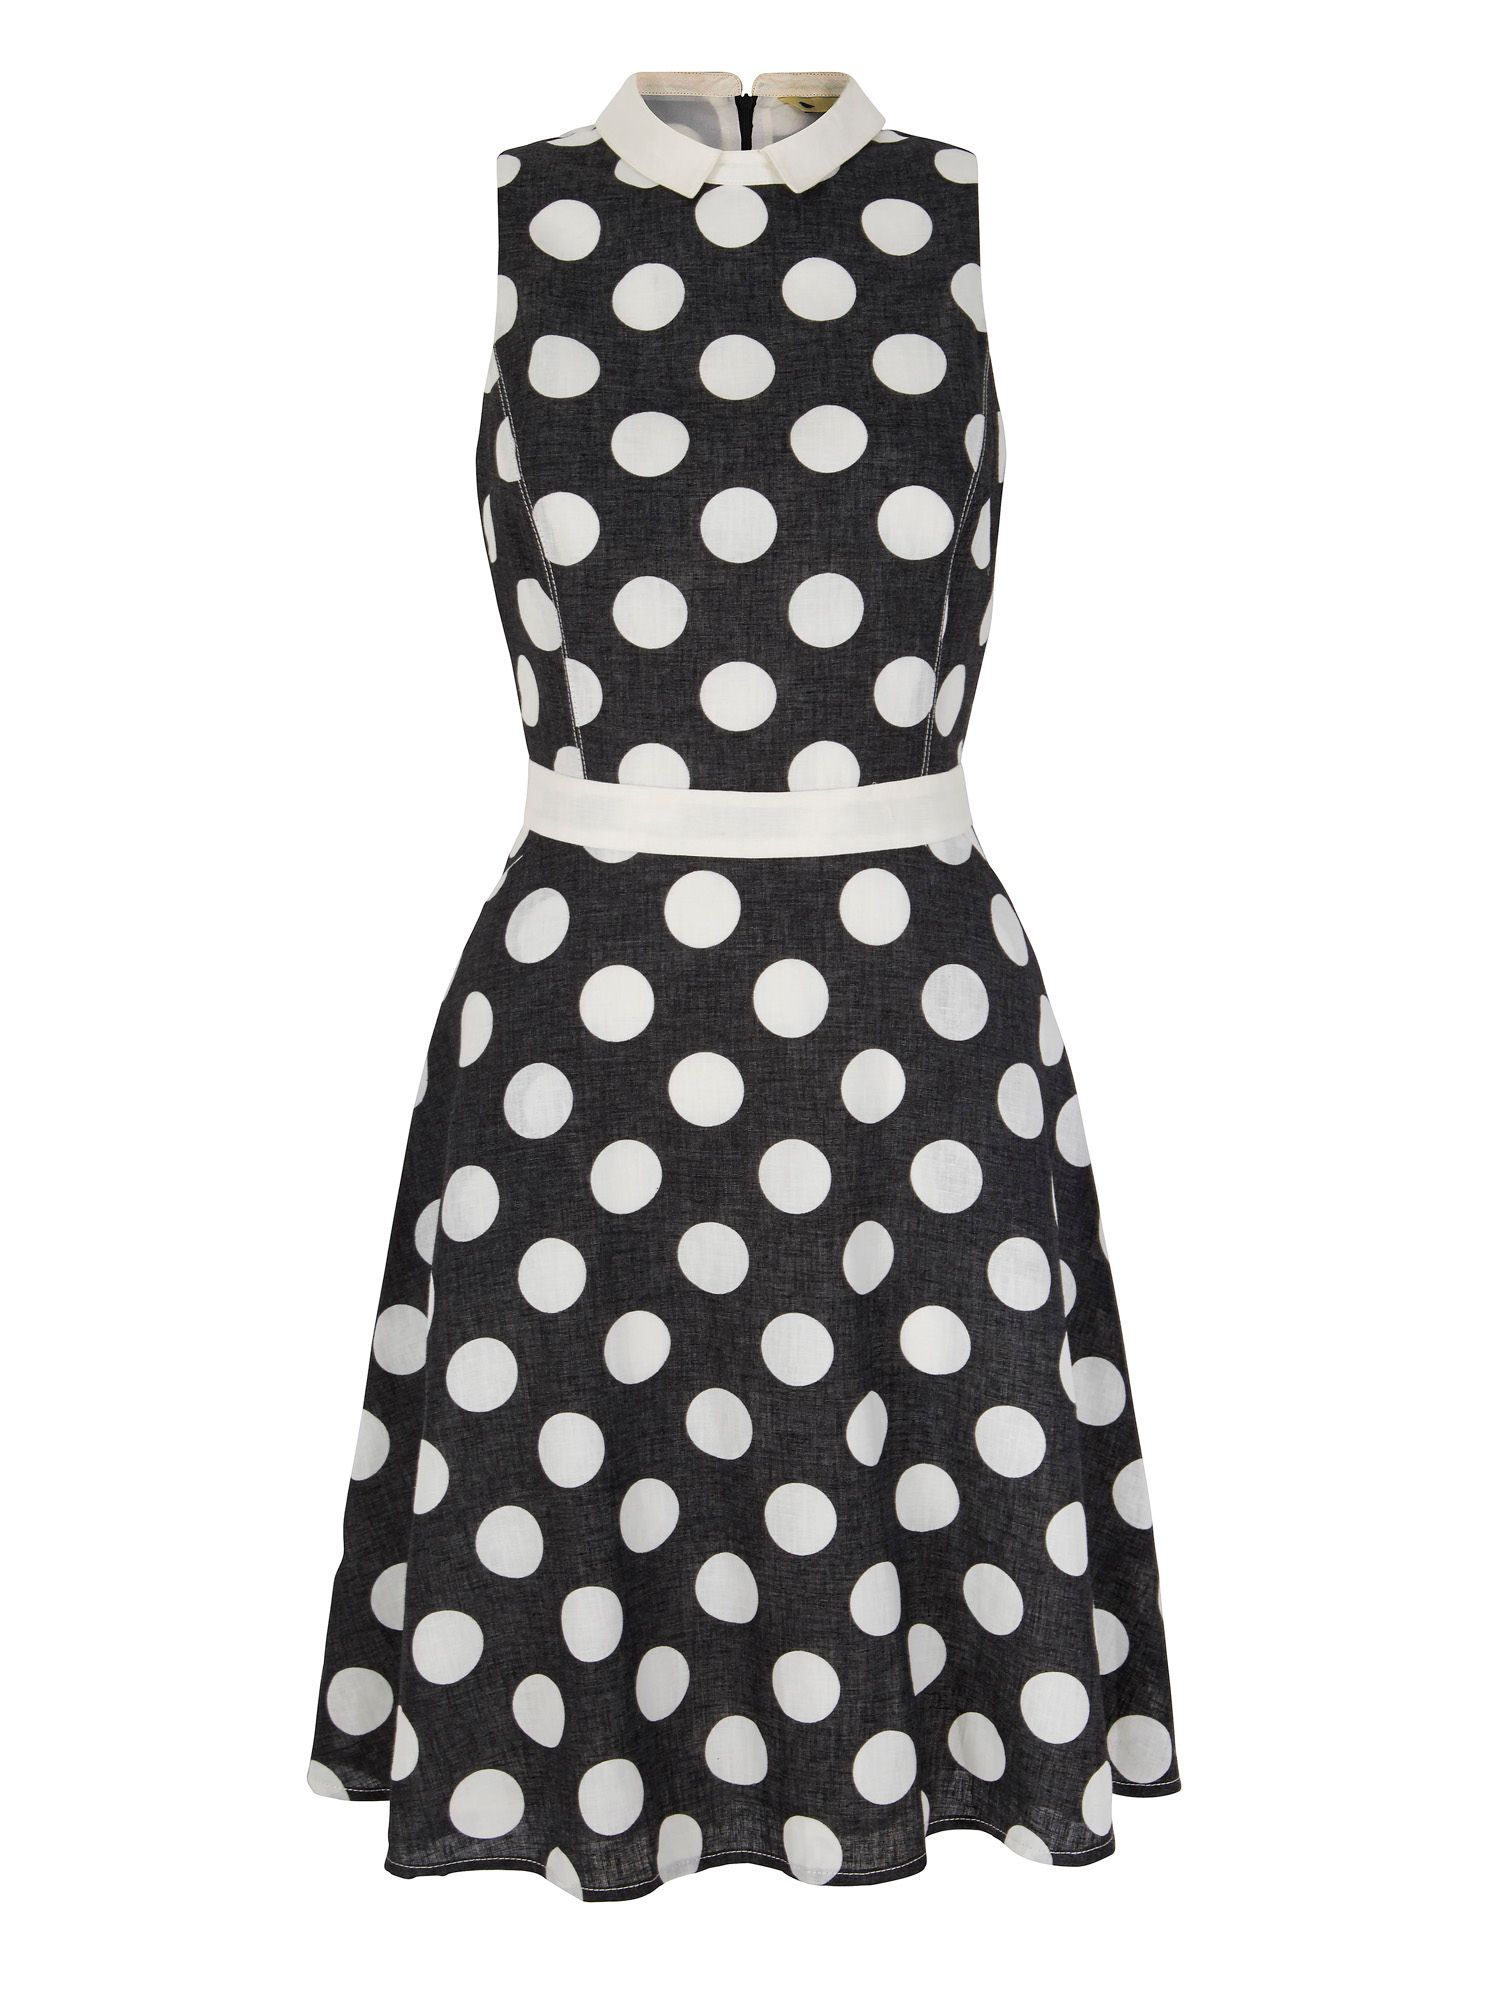 Yumi Polka Dot Shirt Dress, Black